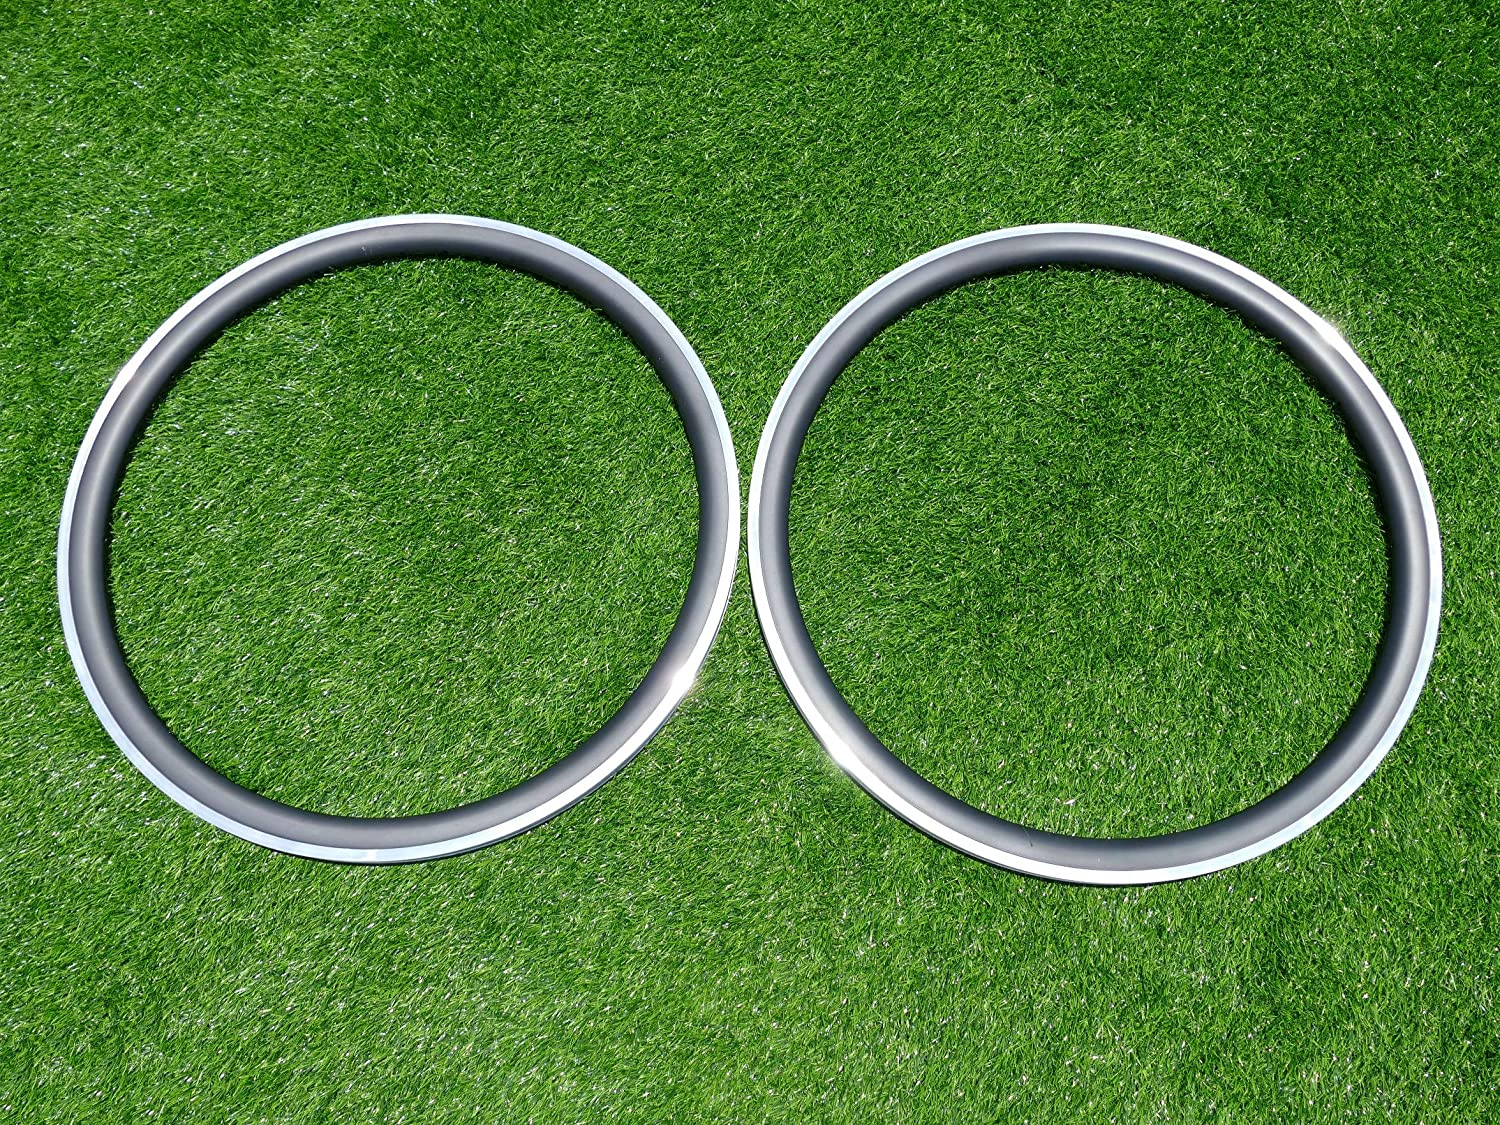 Width 21mm Wide 38mm Cycling Wheel Rims UD Carbon Glossy Bike Clincher Rim 700C Carbon Road Bicycle Rims 38mm (20, 24 Holes) Alloy Brake Side